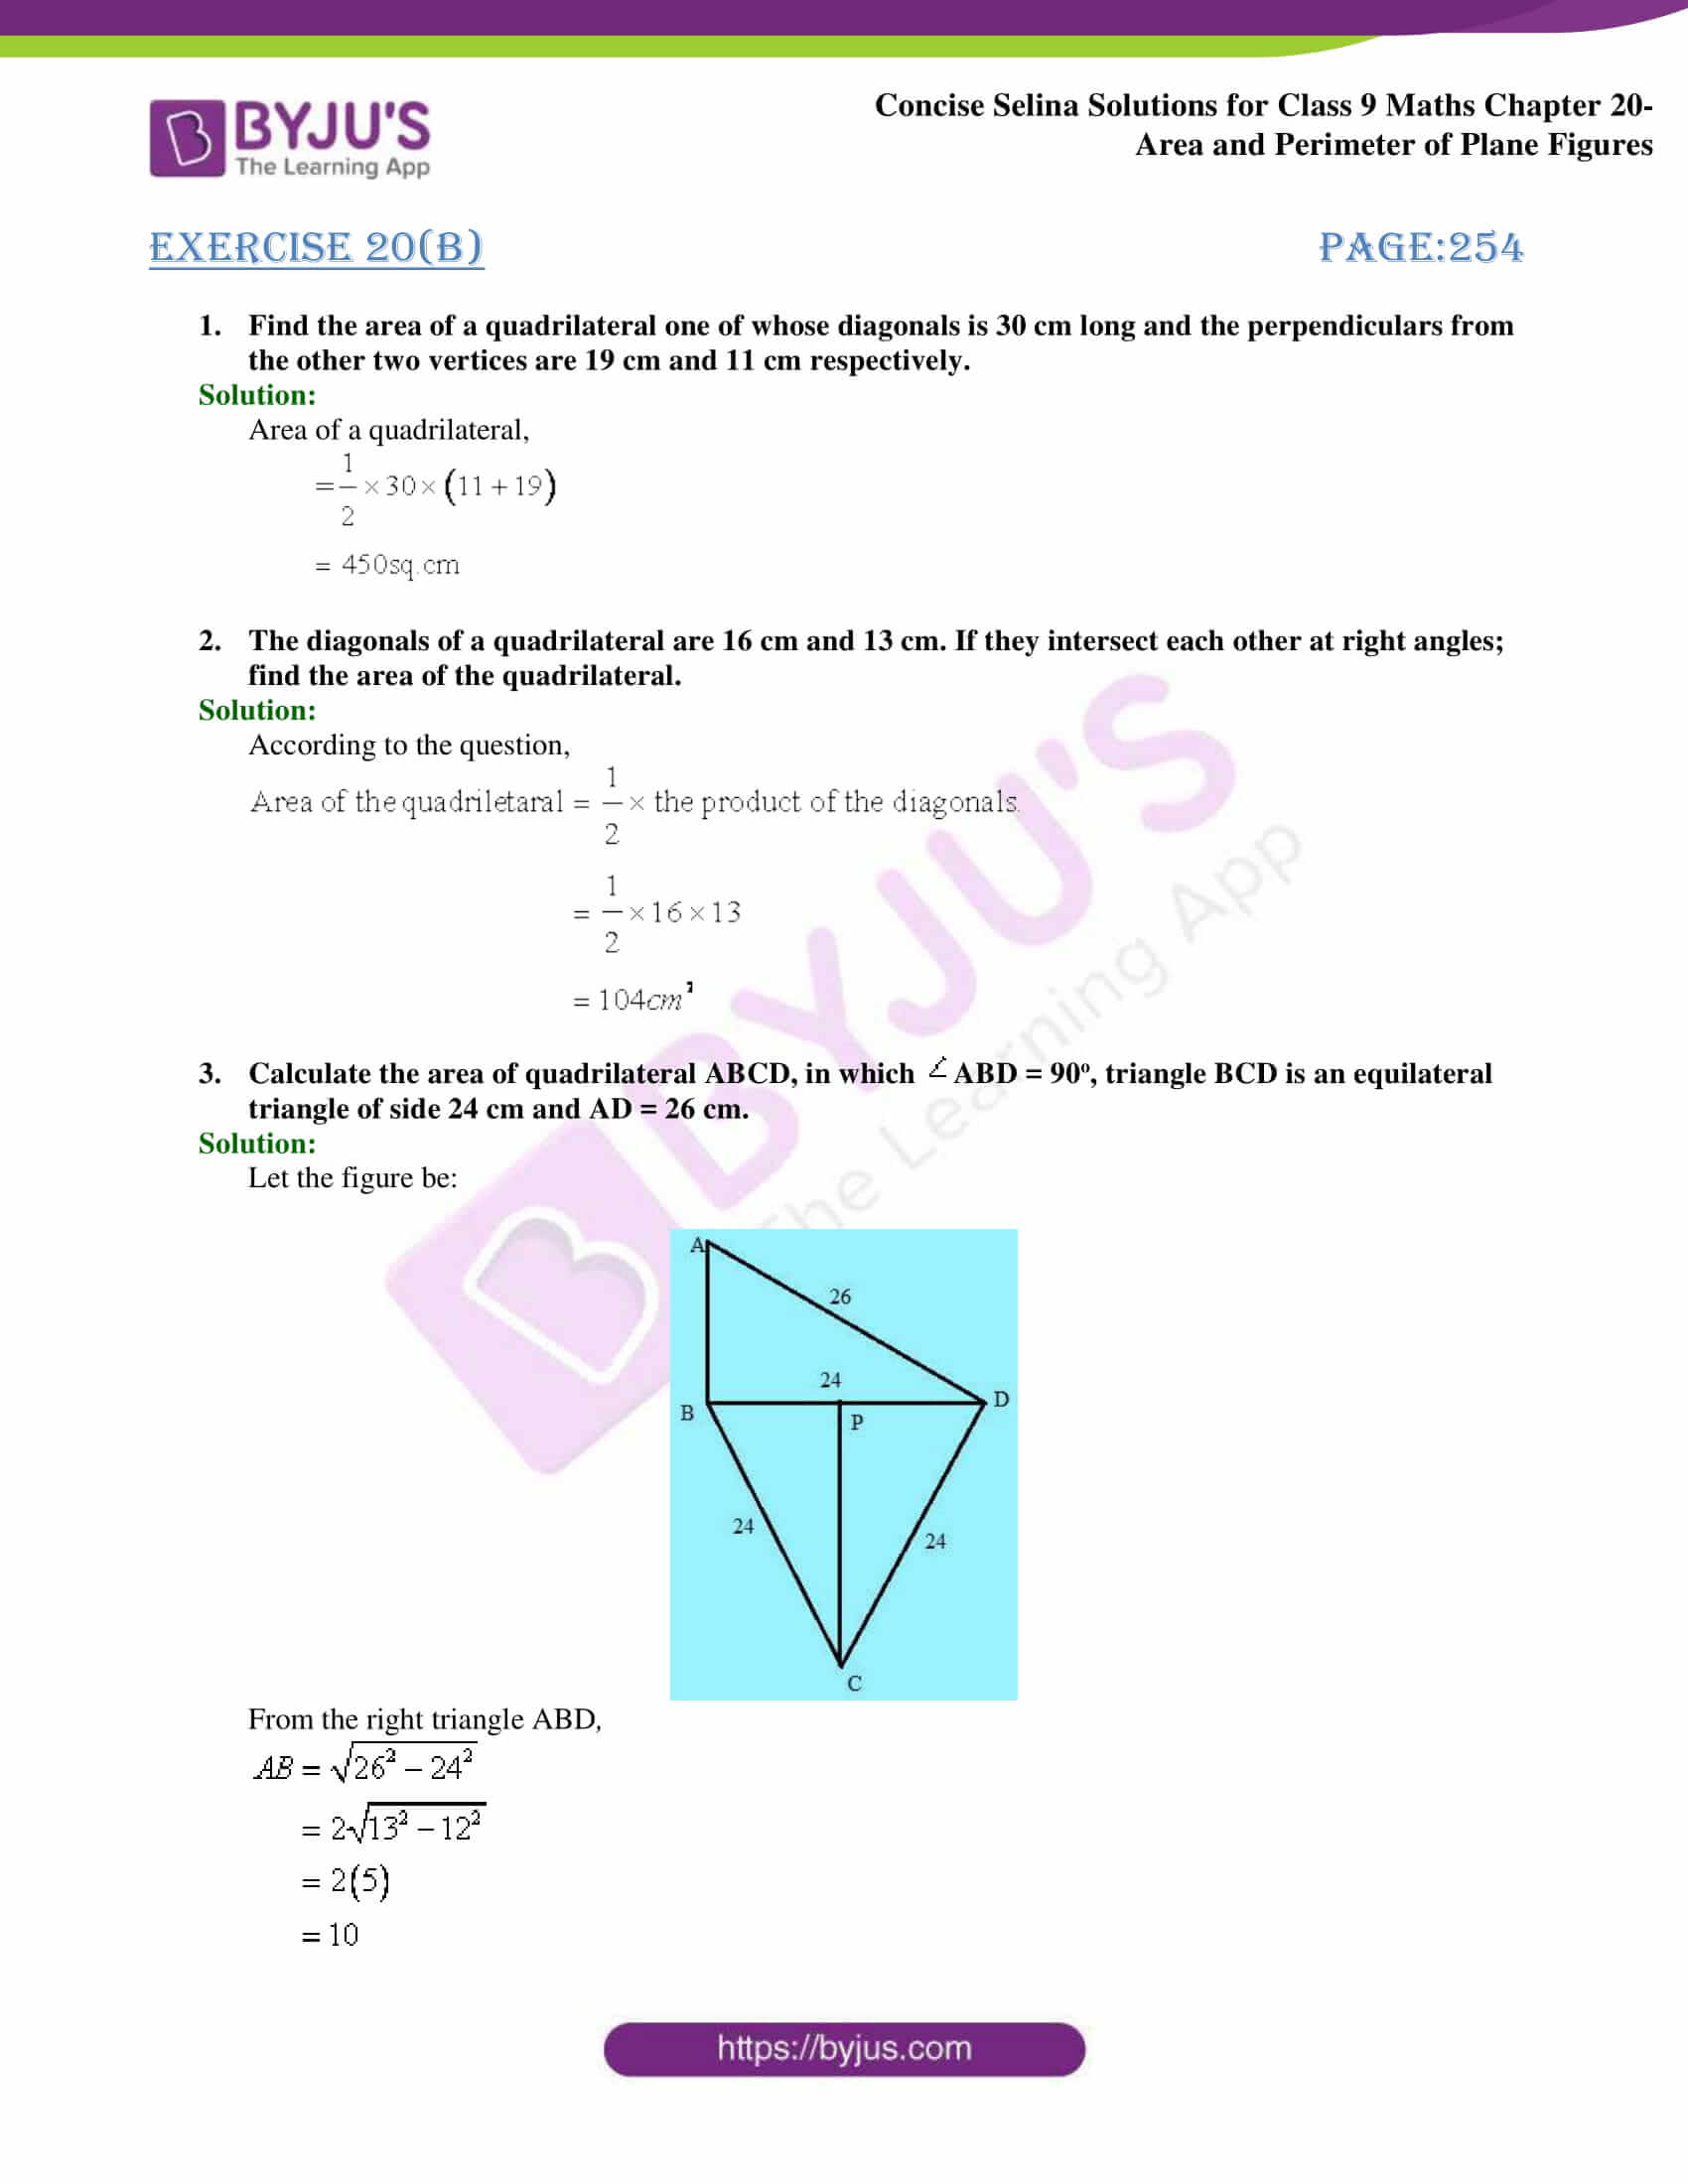 Concise Selina Solutions Class 9 Maths Chapter 20 Area and Perimeter of Plane part 11